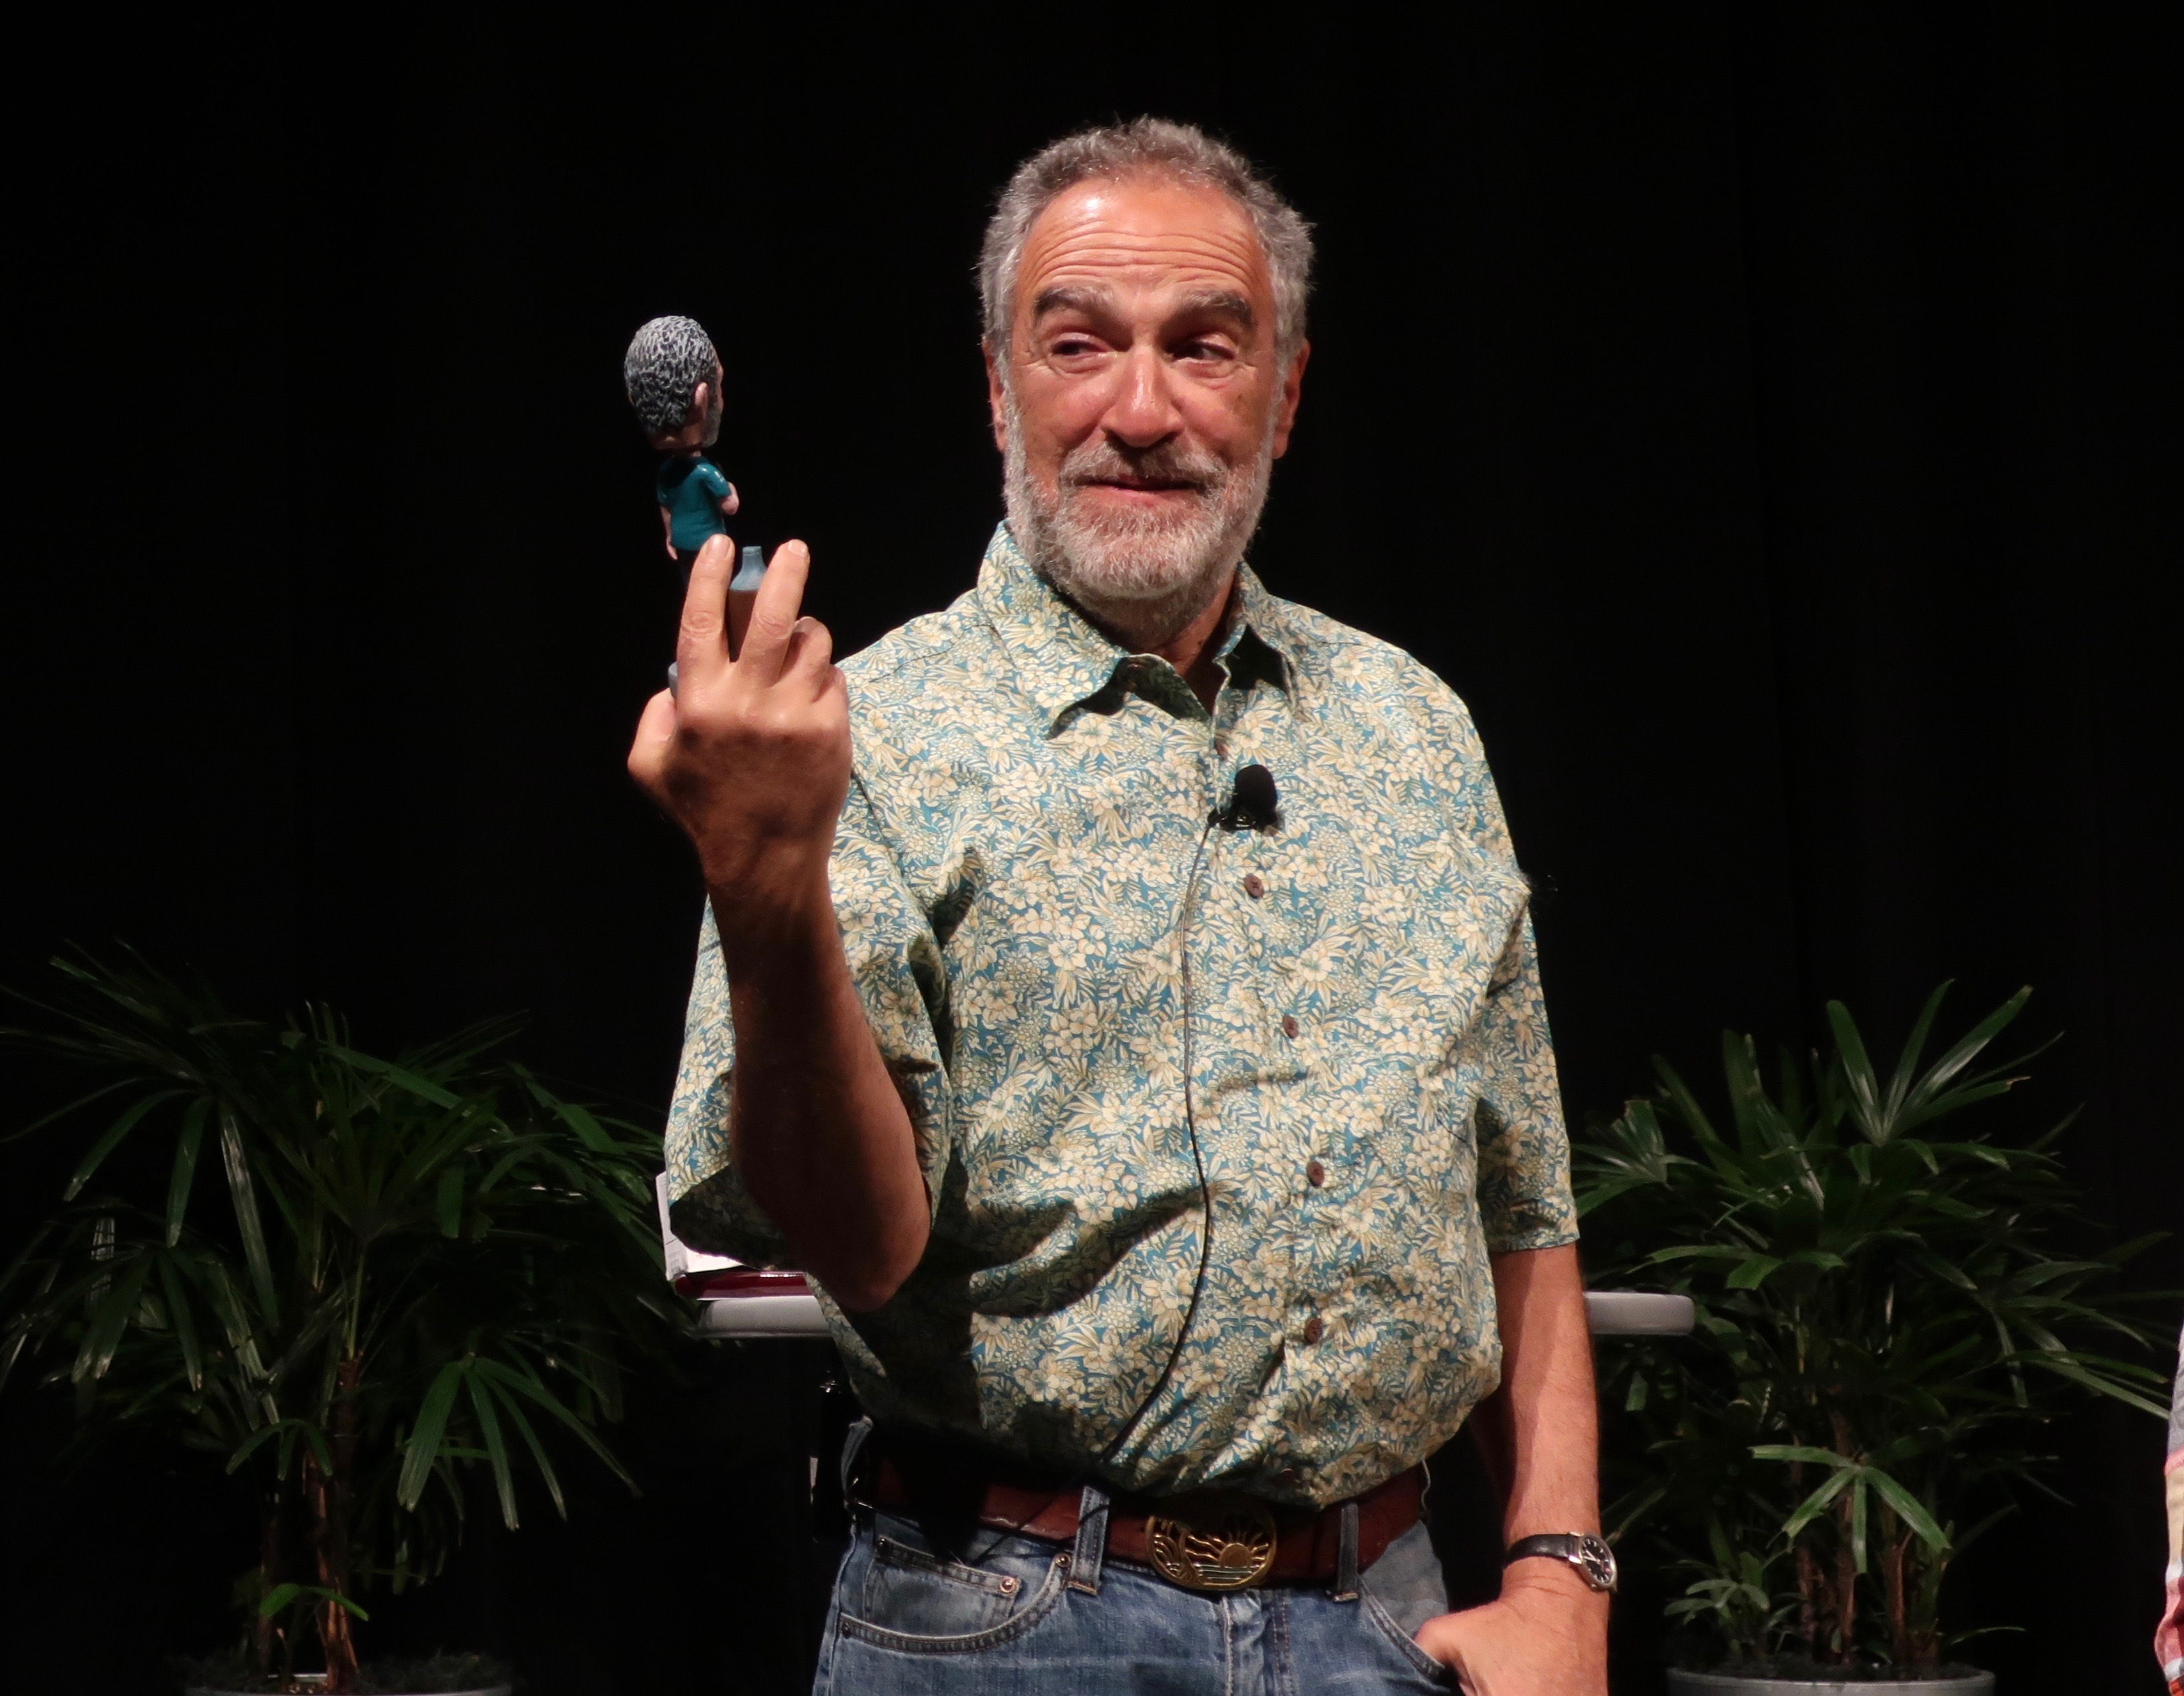 Charlie Papazian inspects his bobblehead during the Keynote Address at Homebrew Con 2018.